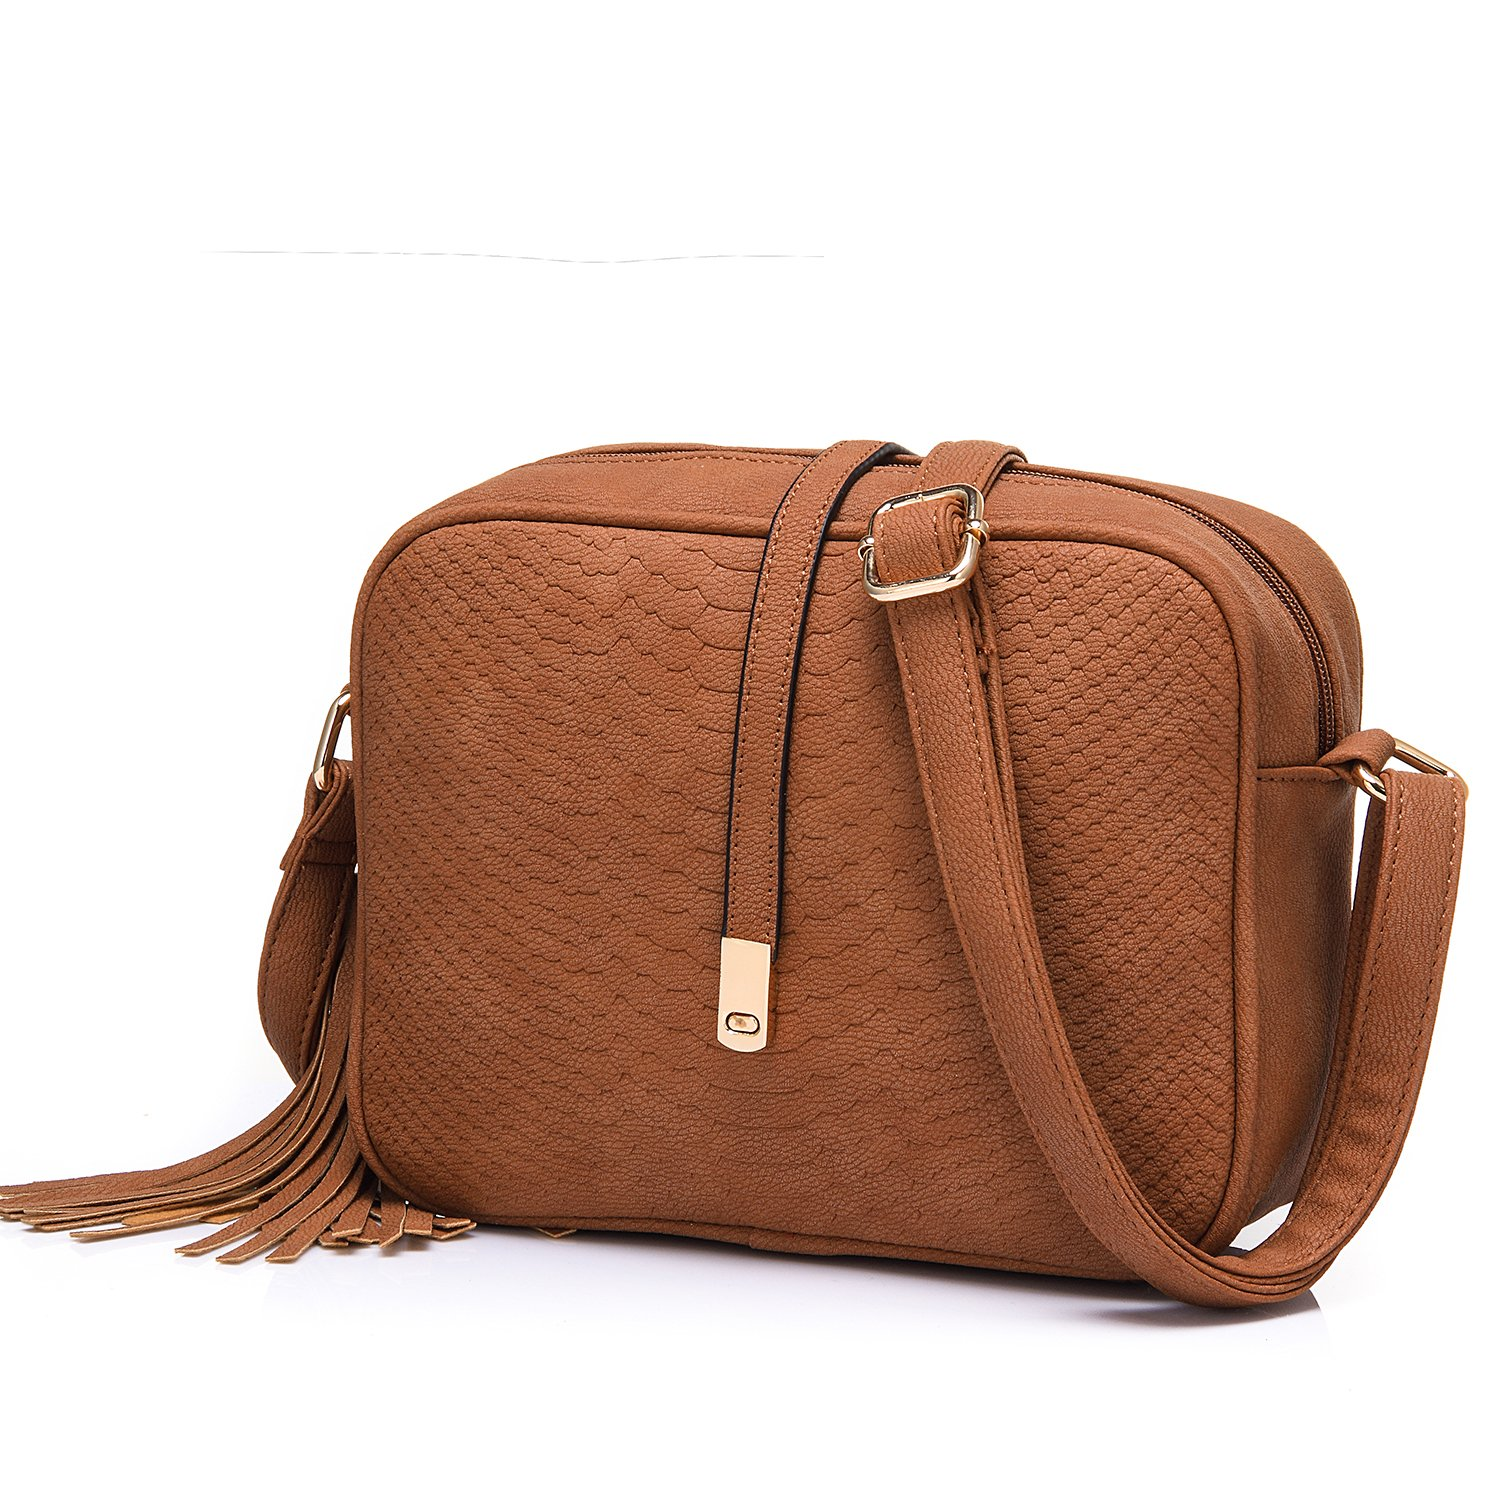 Small Crossbody Bags for Women Ladies Faux Leather Mini Shoulder Bag with  Tassel Purse Brown  Handbags  Amazon.com 1d1492fa8667